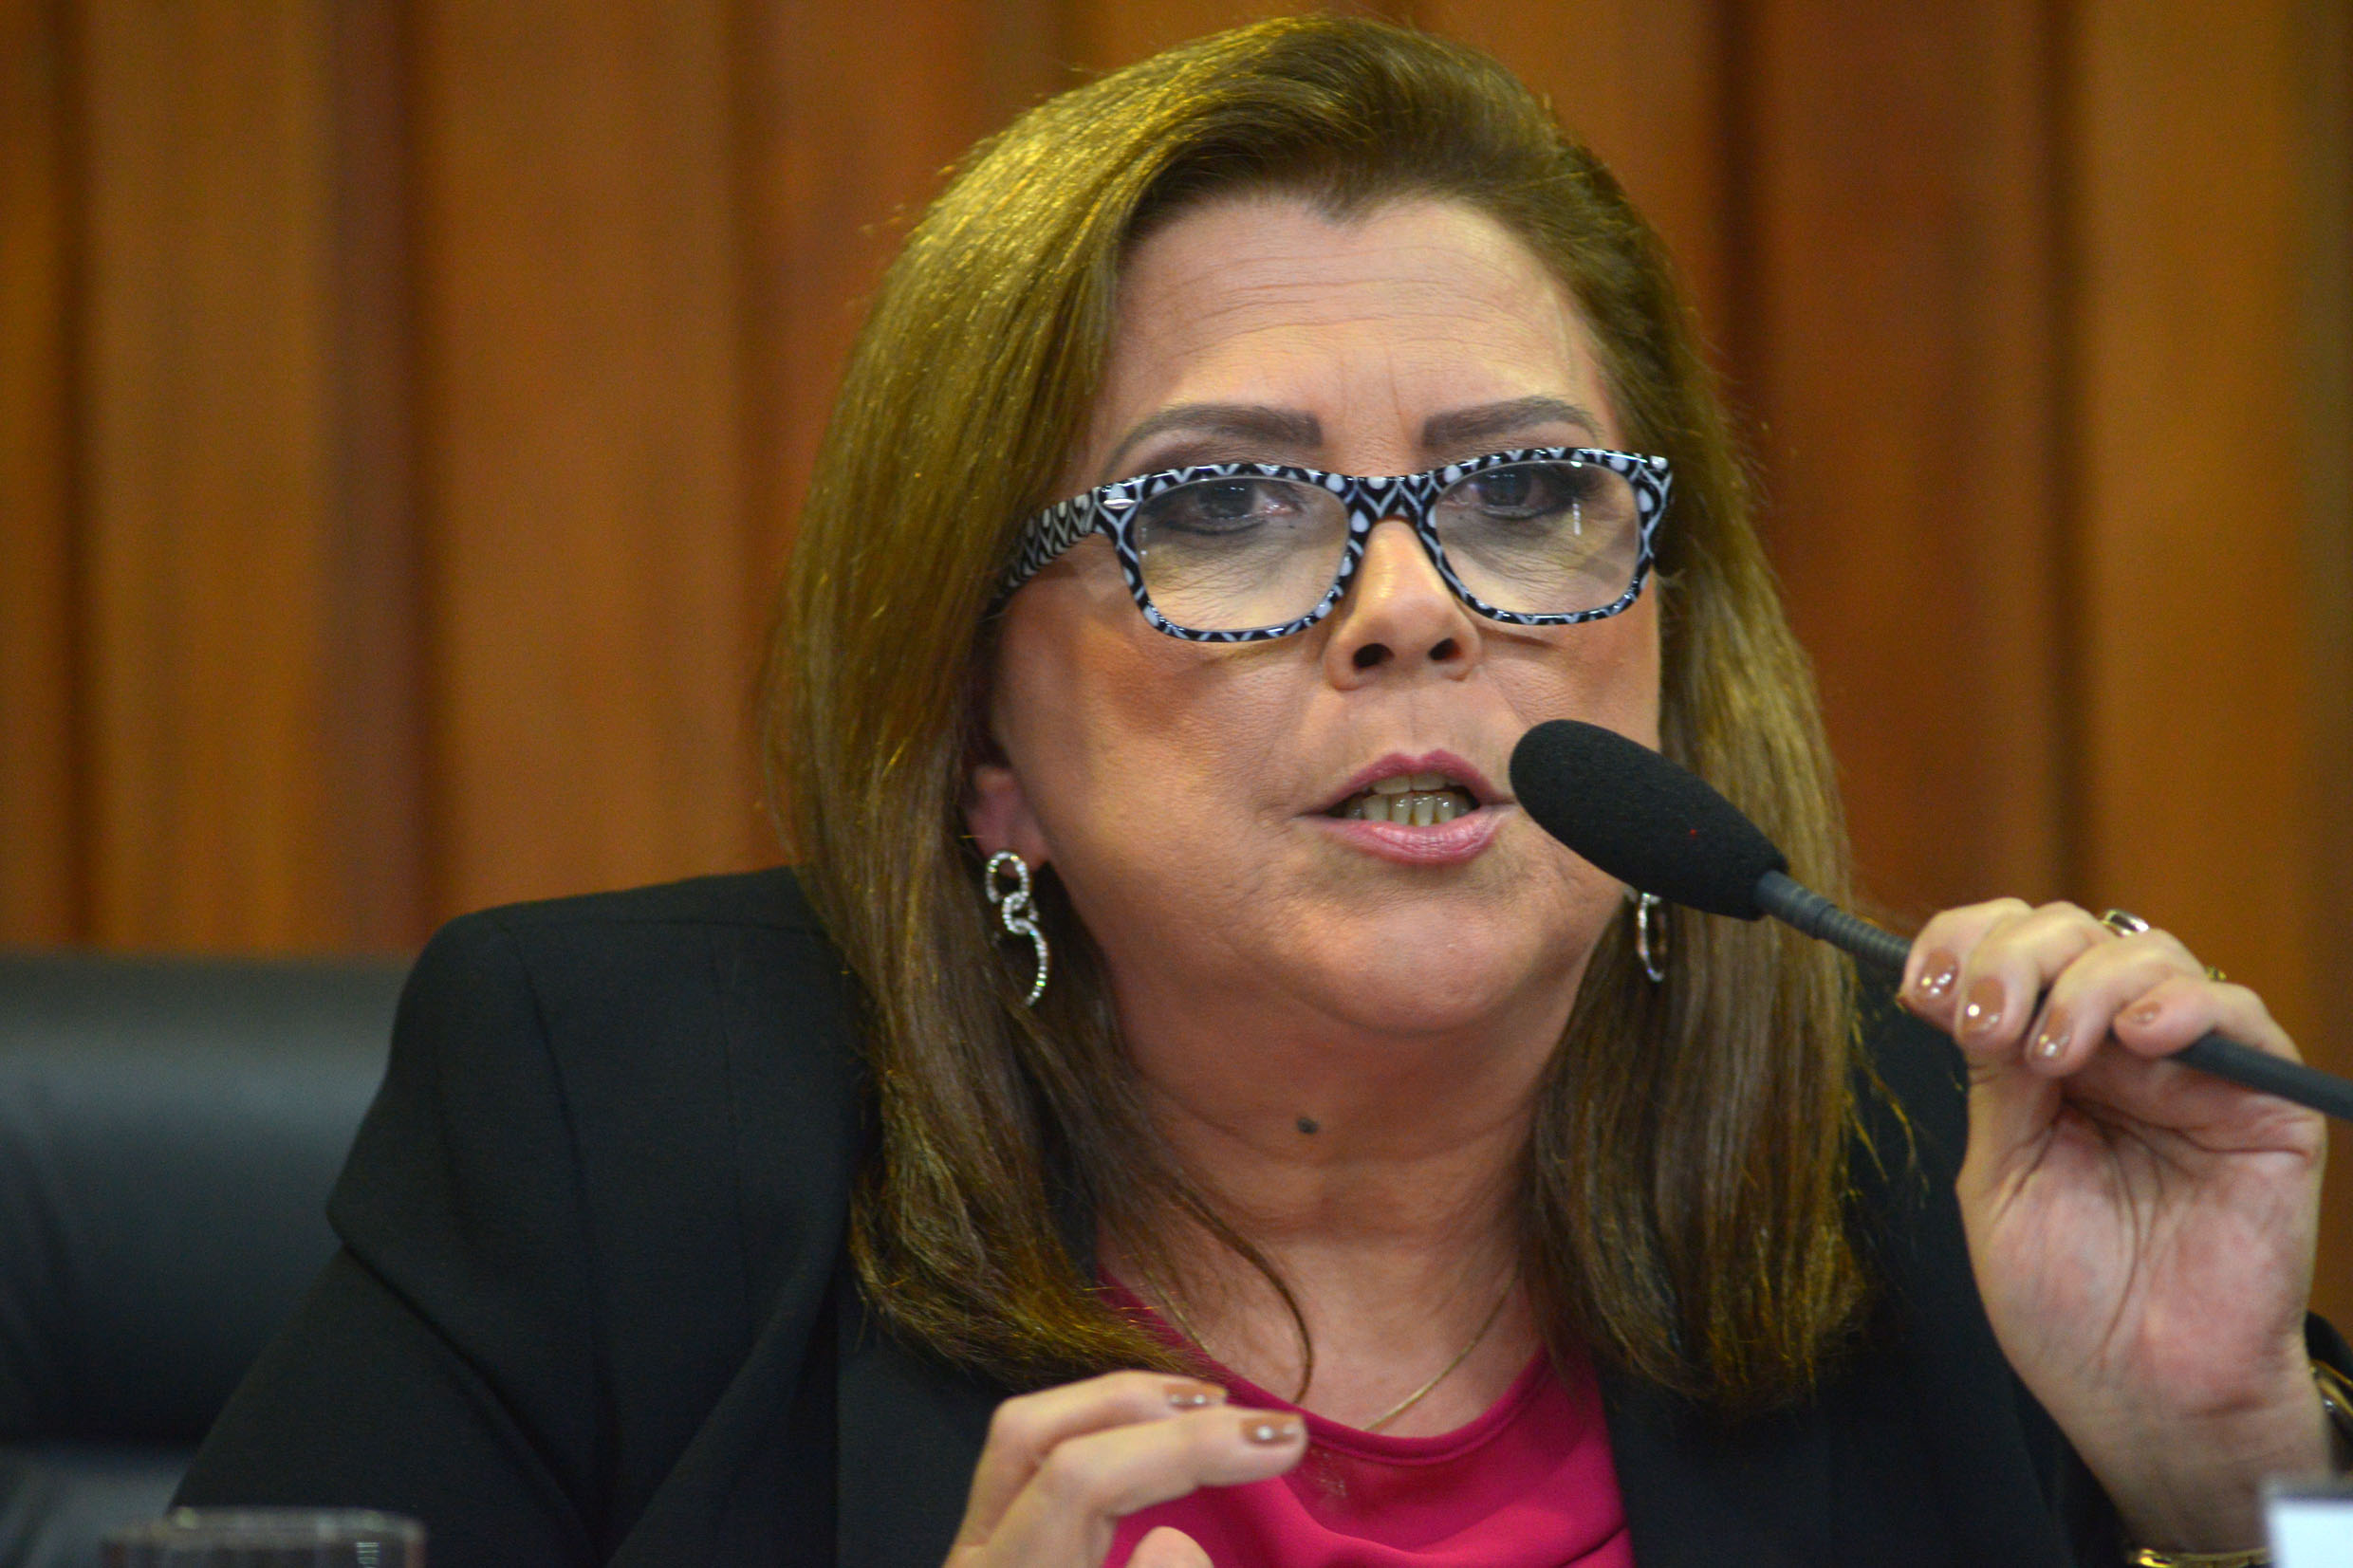 Cristiane Gomes<a style='float:right' href='https://www3.al.sp.gov.br/repositorio/noticia/N-03-2018/fg219322.jpg' target=_blank><img src='/_img/material-file-download-white.png' width='14px' alt='Clique para baixar a imagem'></a>